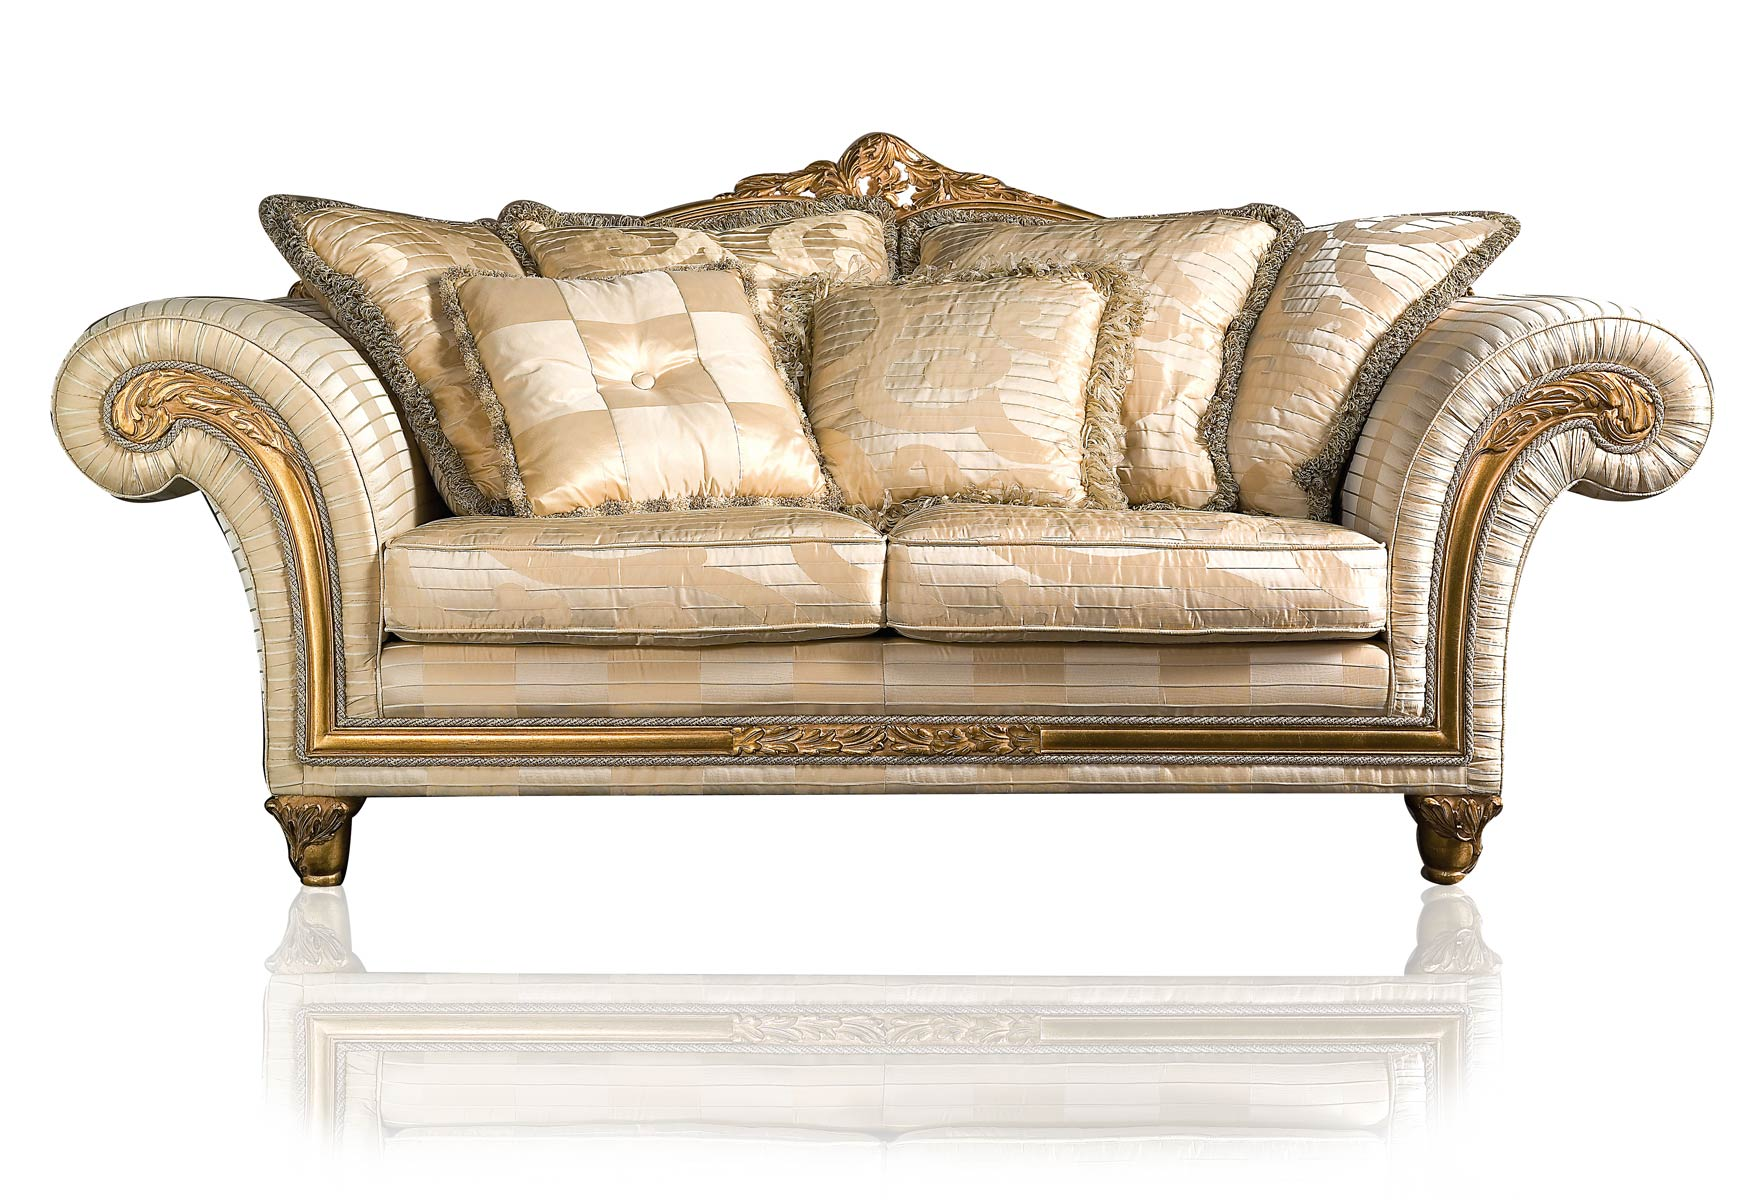 Luxury classic sofa and armchairs imperial by vimercati for Classic loveseat